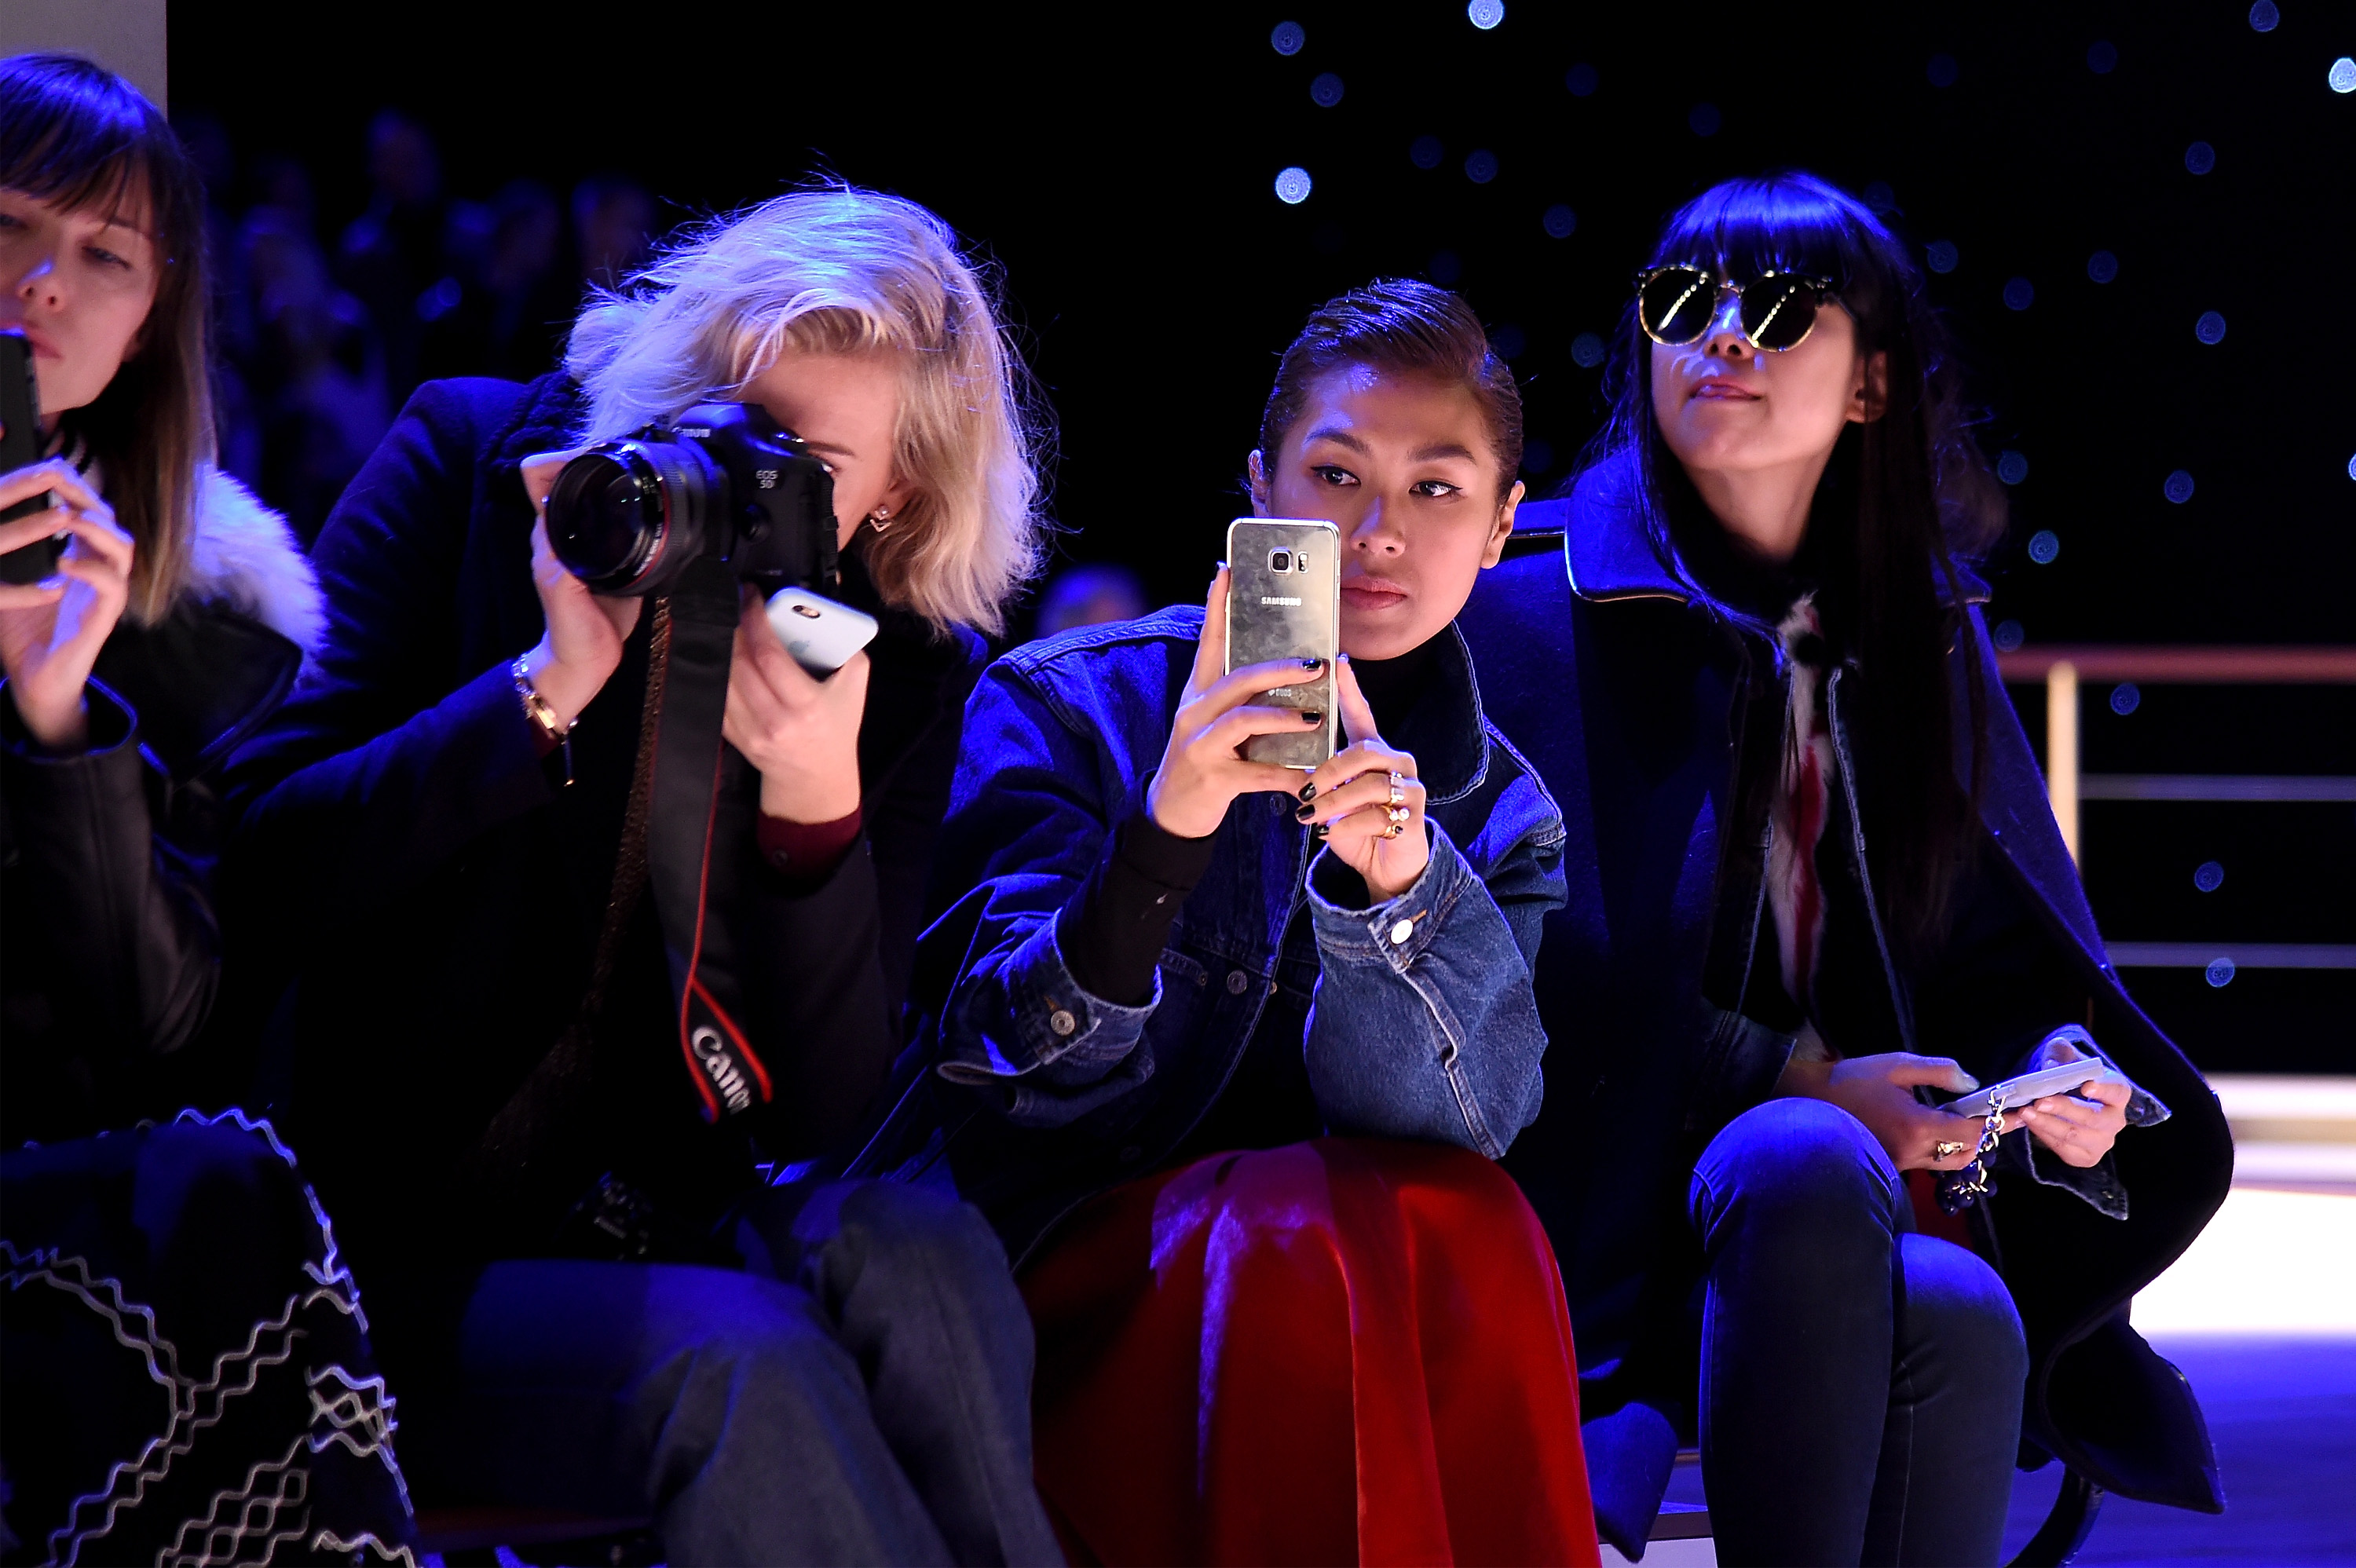 NEW YORK, NY - FEBRUARY 15: (L-R) Zanita Whittington, Liz Uy, and Leaf Greener attend the Tommy Hilfiger Women's Fall 2016 show durong New York Fashion Week: The Shows at Park Avenue Armory on February 15, 2016 in New York City. (Photo by Nicholas Hunt/Getty Images for Tommy Hilfiger)